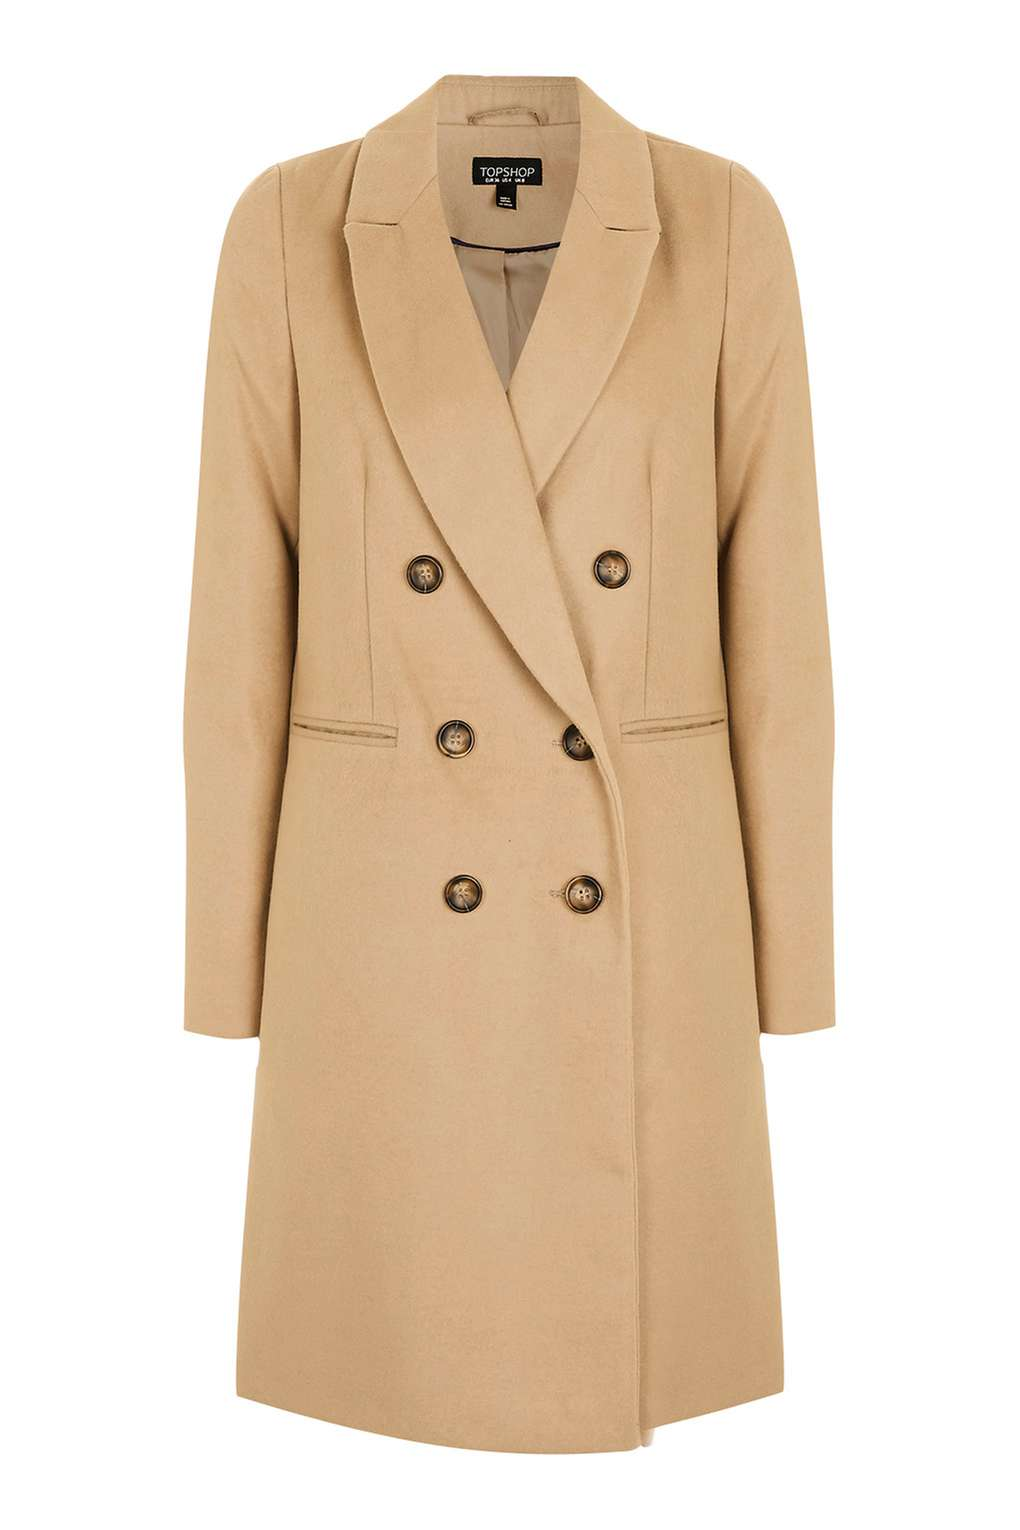 4.  Camel Coat   You can not go wrong with a camel coat in your closet. This color is an easy neutral that pairs with anything, and of course will keep you warm! I love all different lengths and textures of this color in a coat. I am loving  this one , t his one , and this  one.